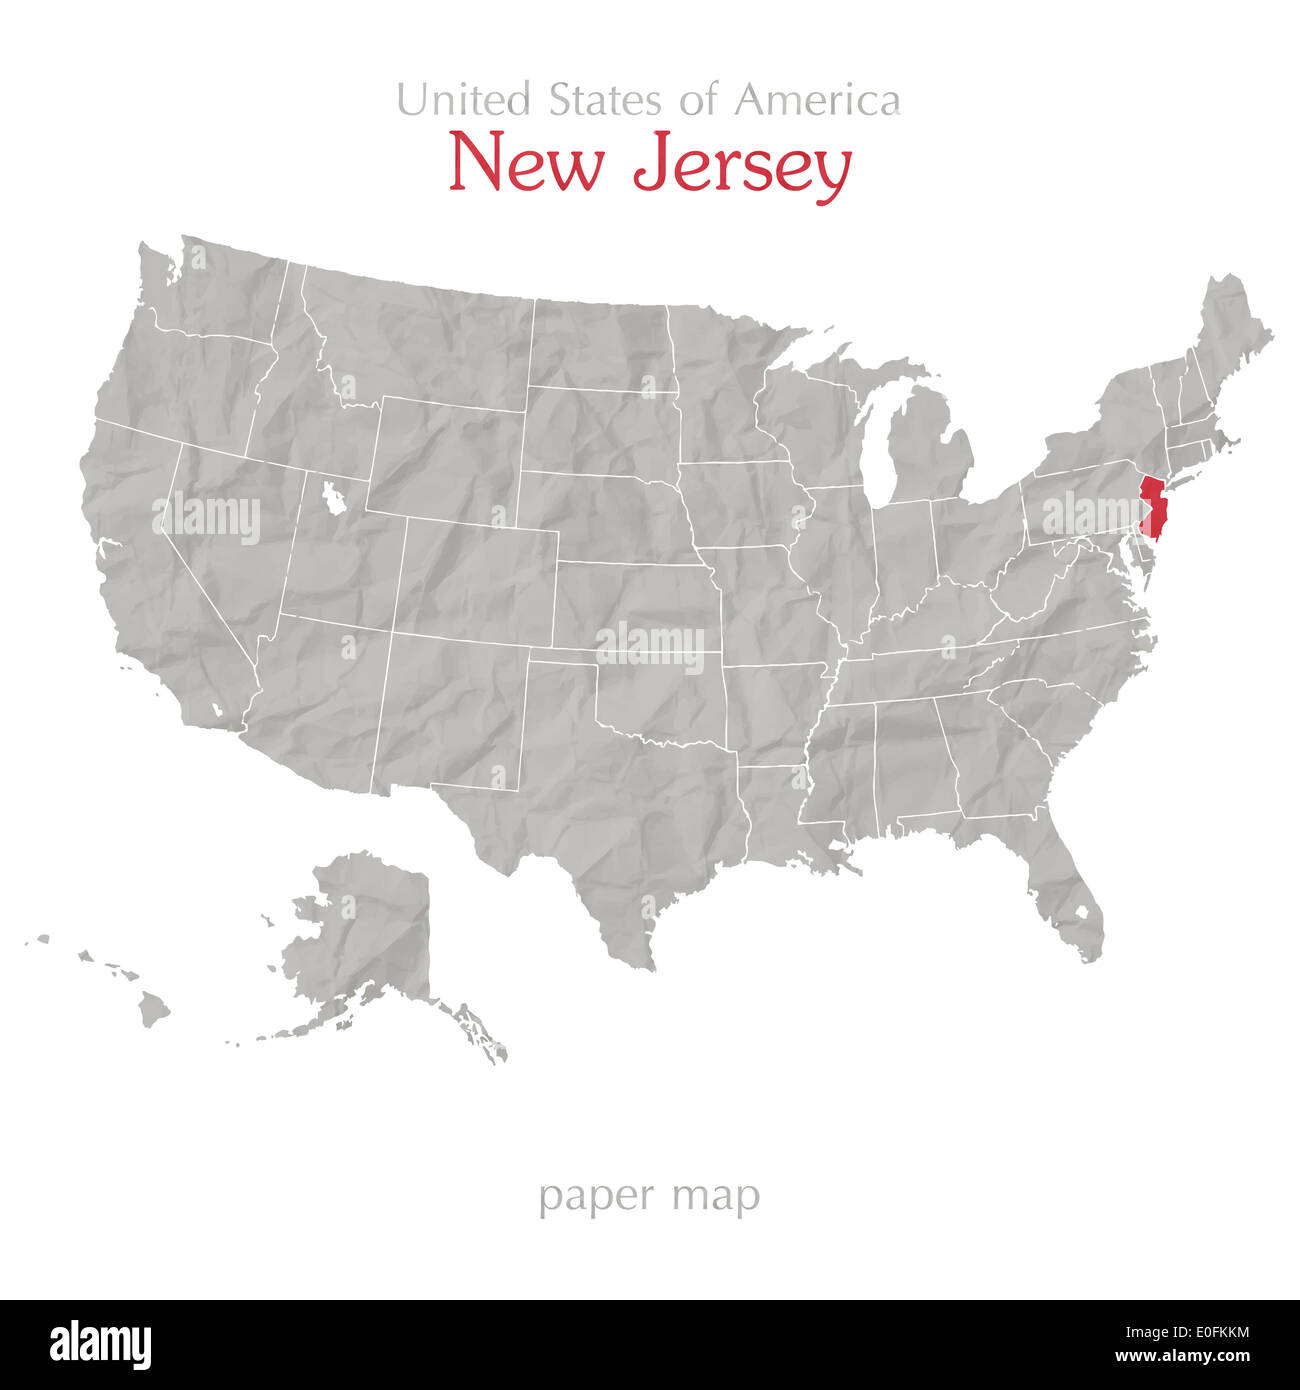 United States Of America Map And New Jersey State Territory On - Us map nj